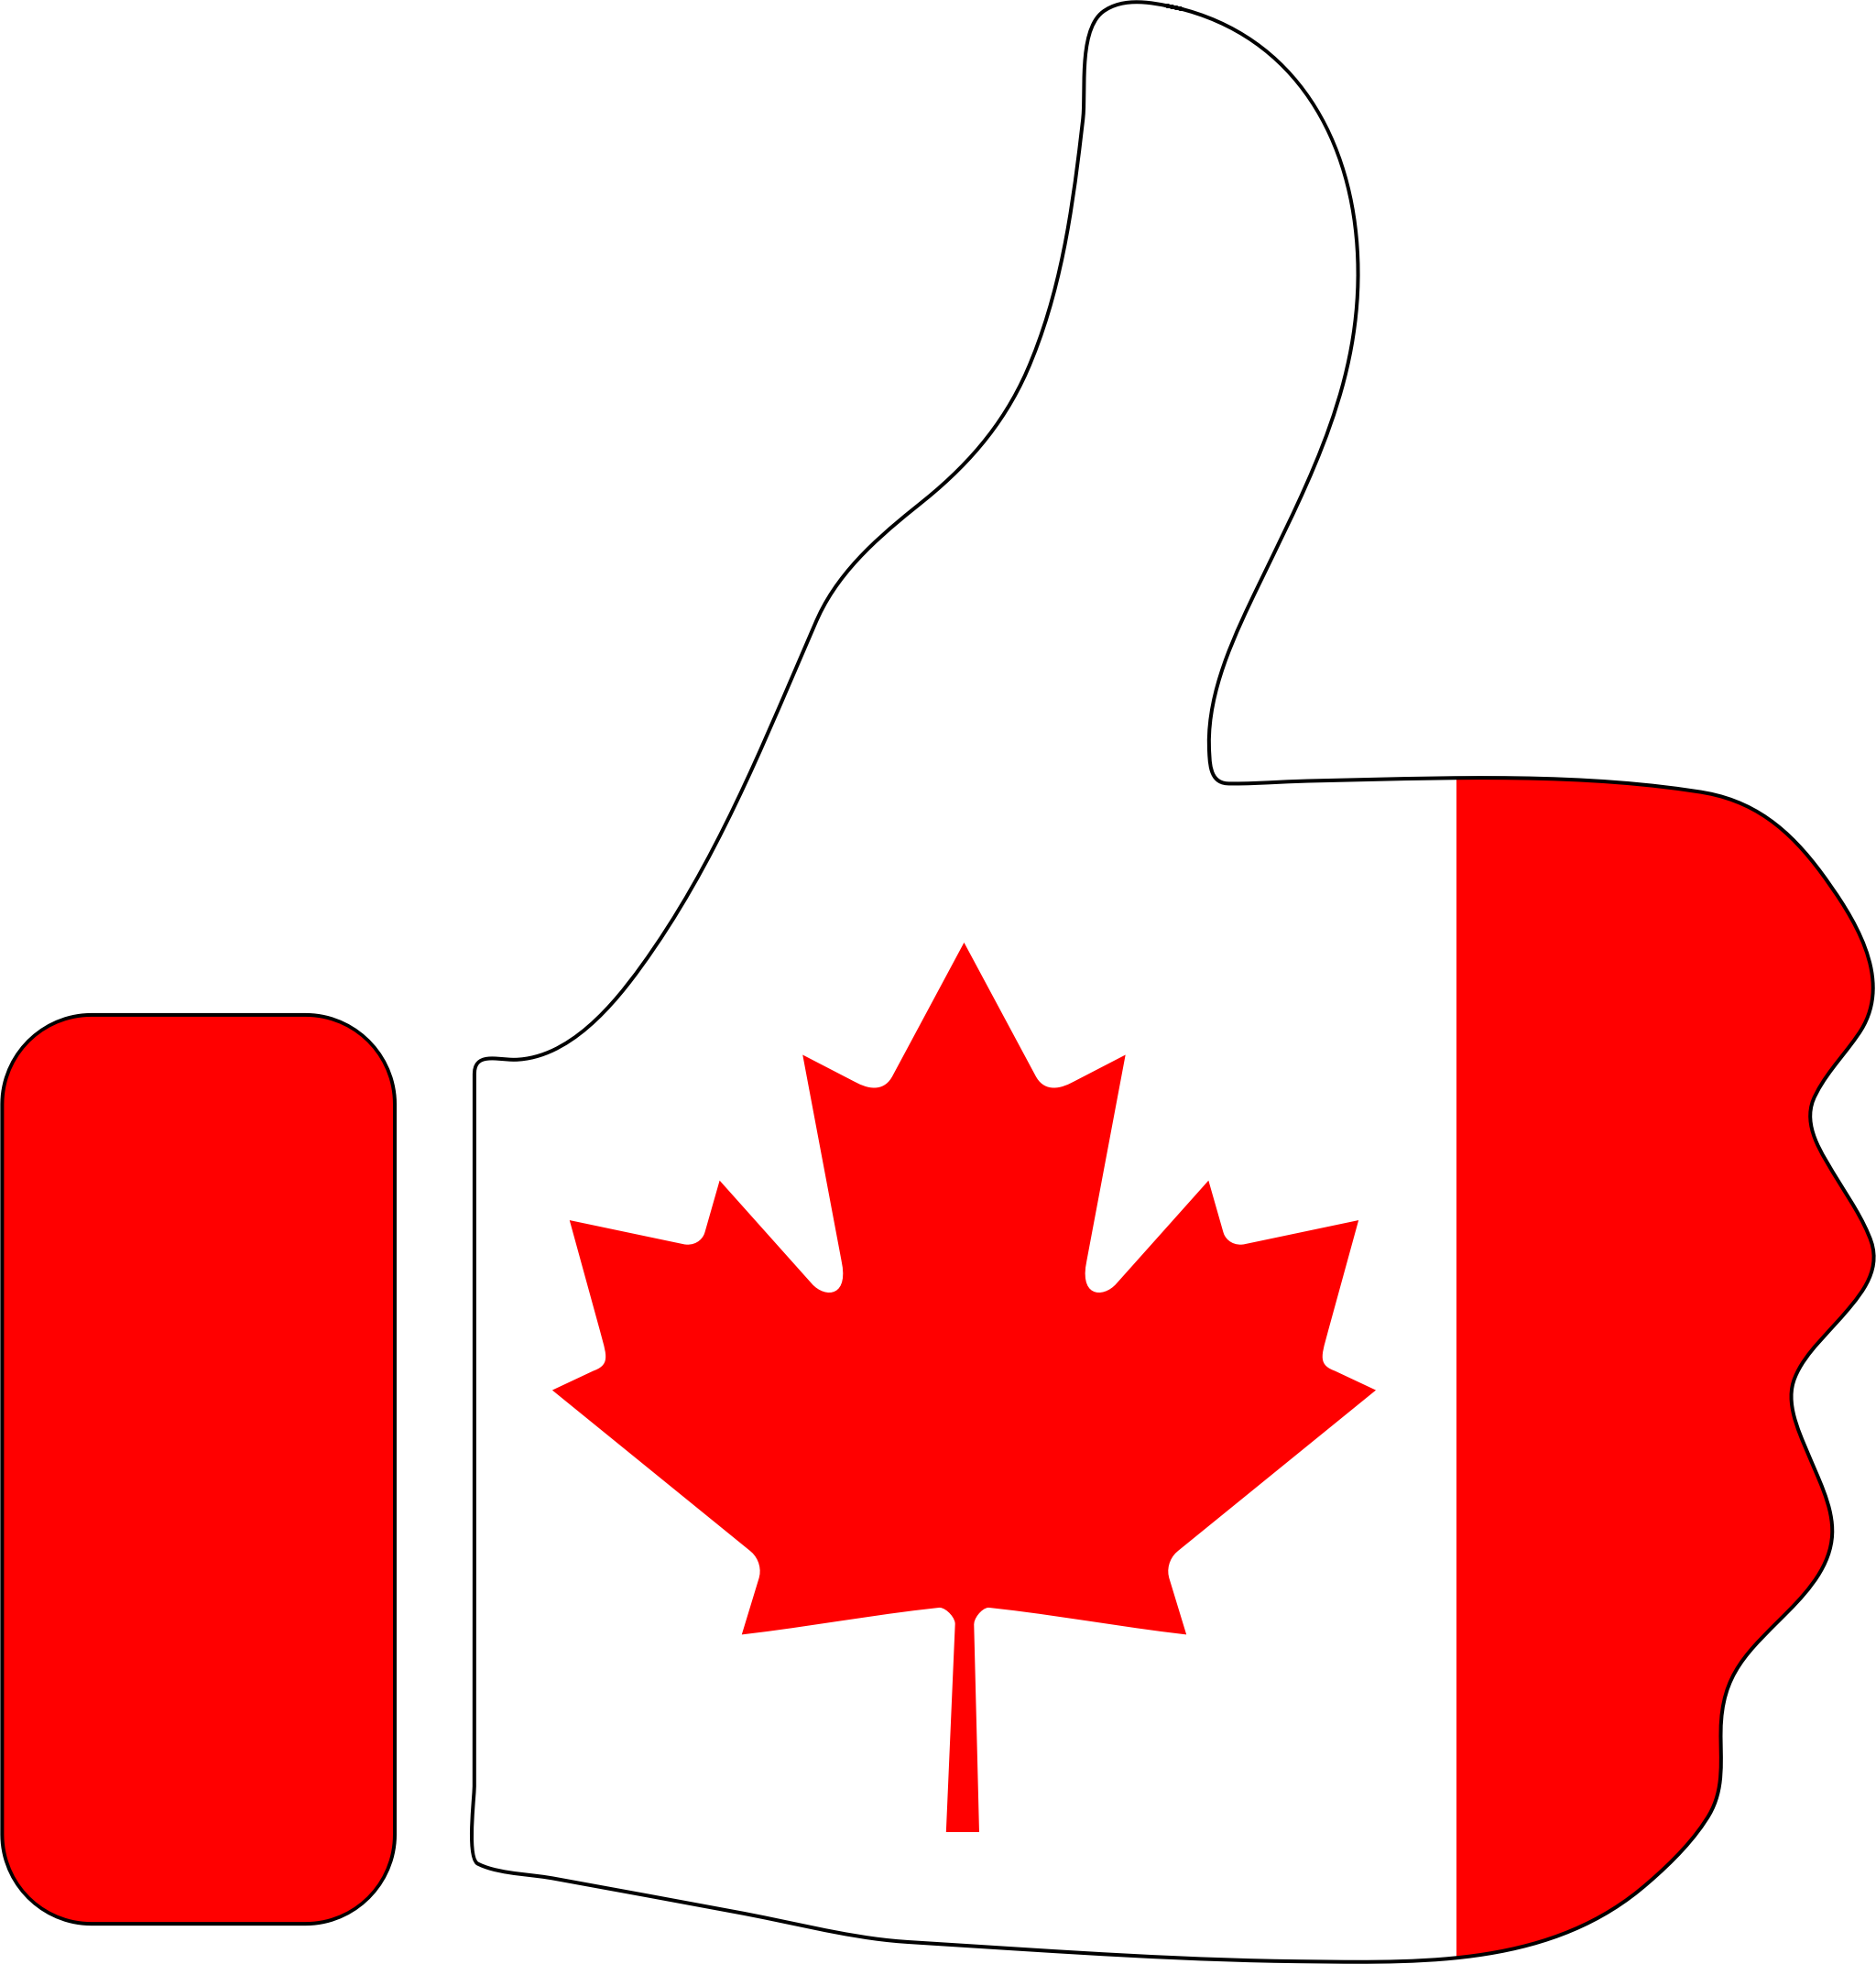 Thumbs Up Canada With Stroke by GDJ